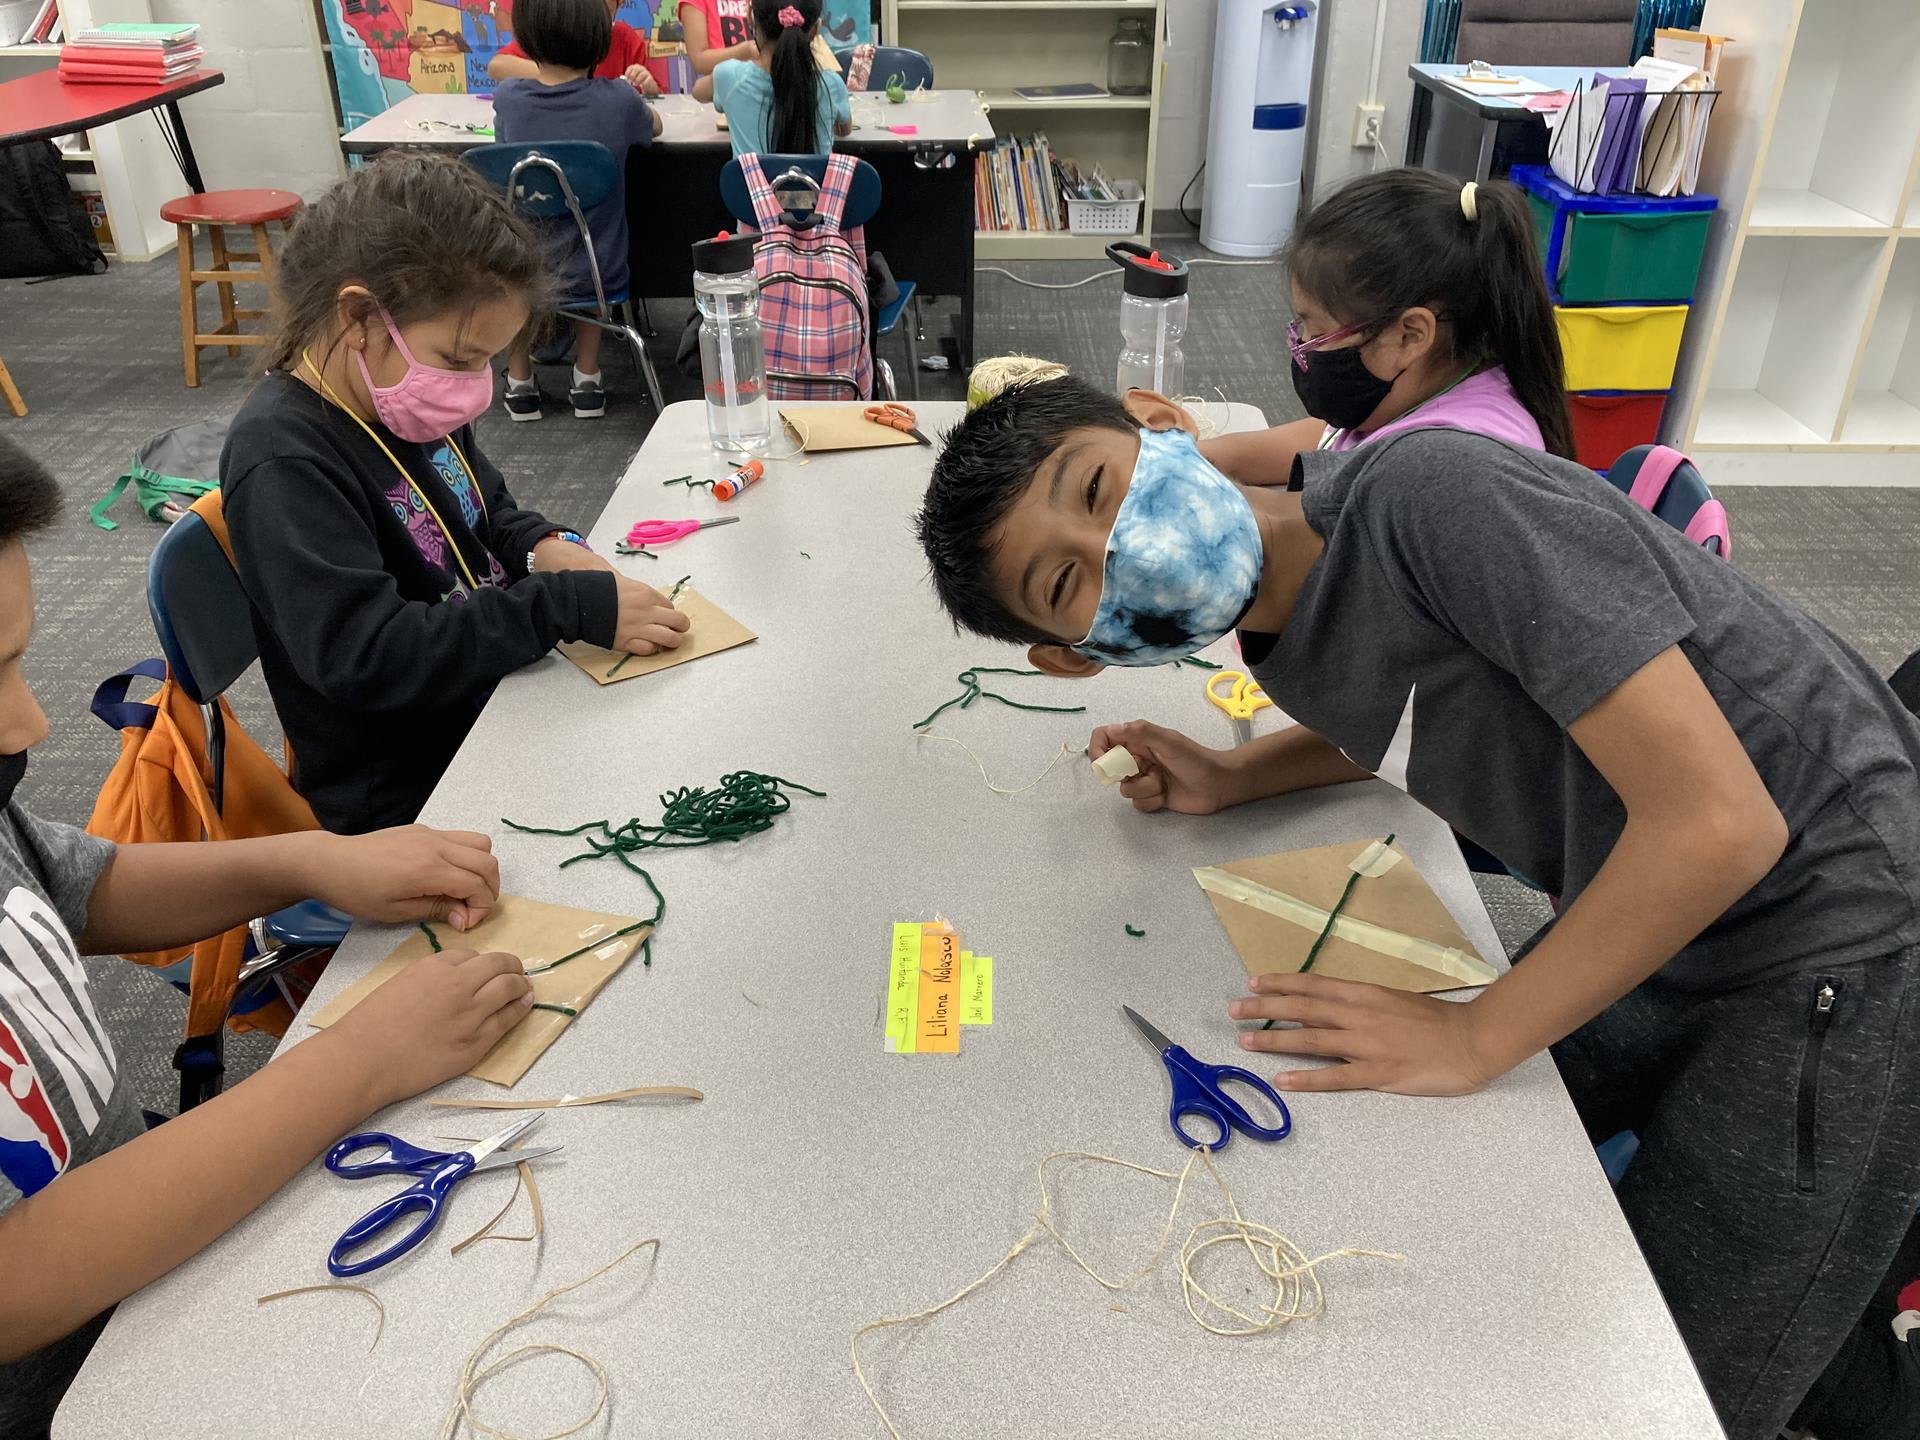 Students working on art in Kid City